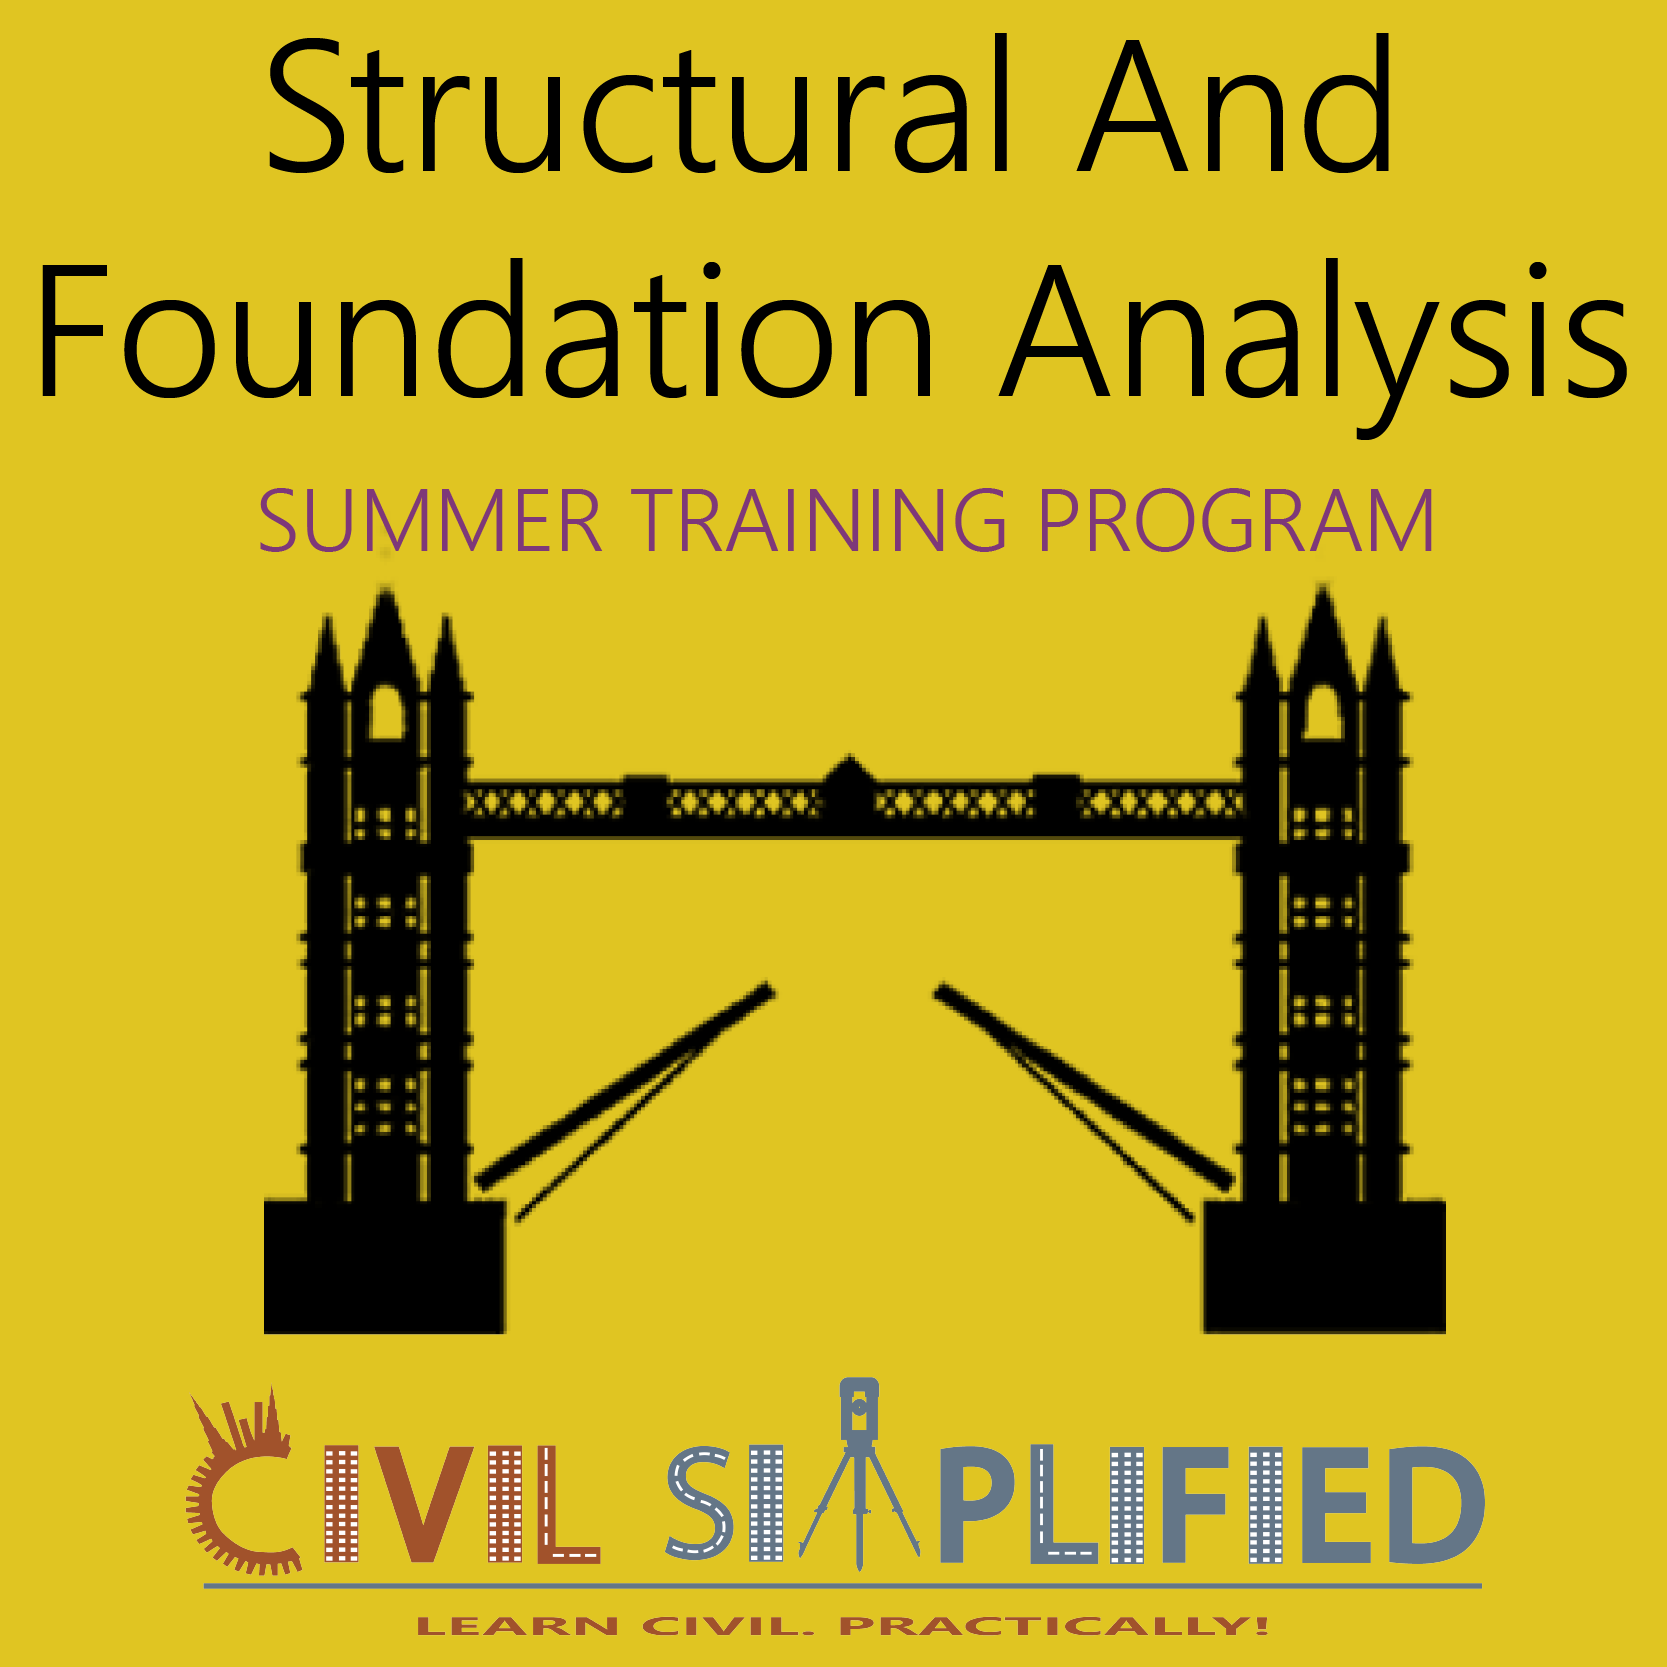 Summer Training Program in Civil Engineering - Structural and Foundation Analysis in Bangalore